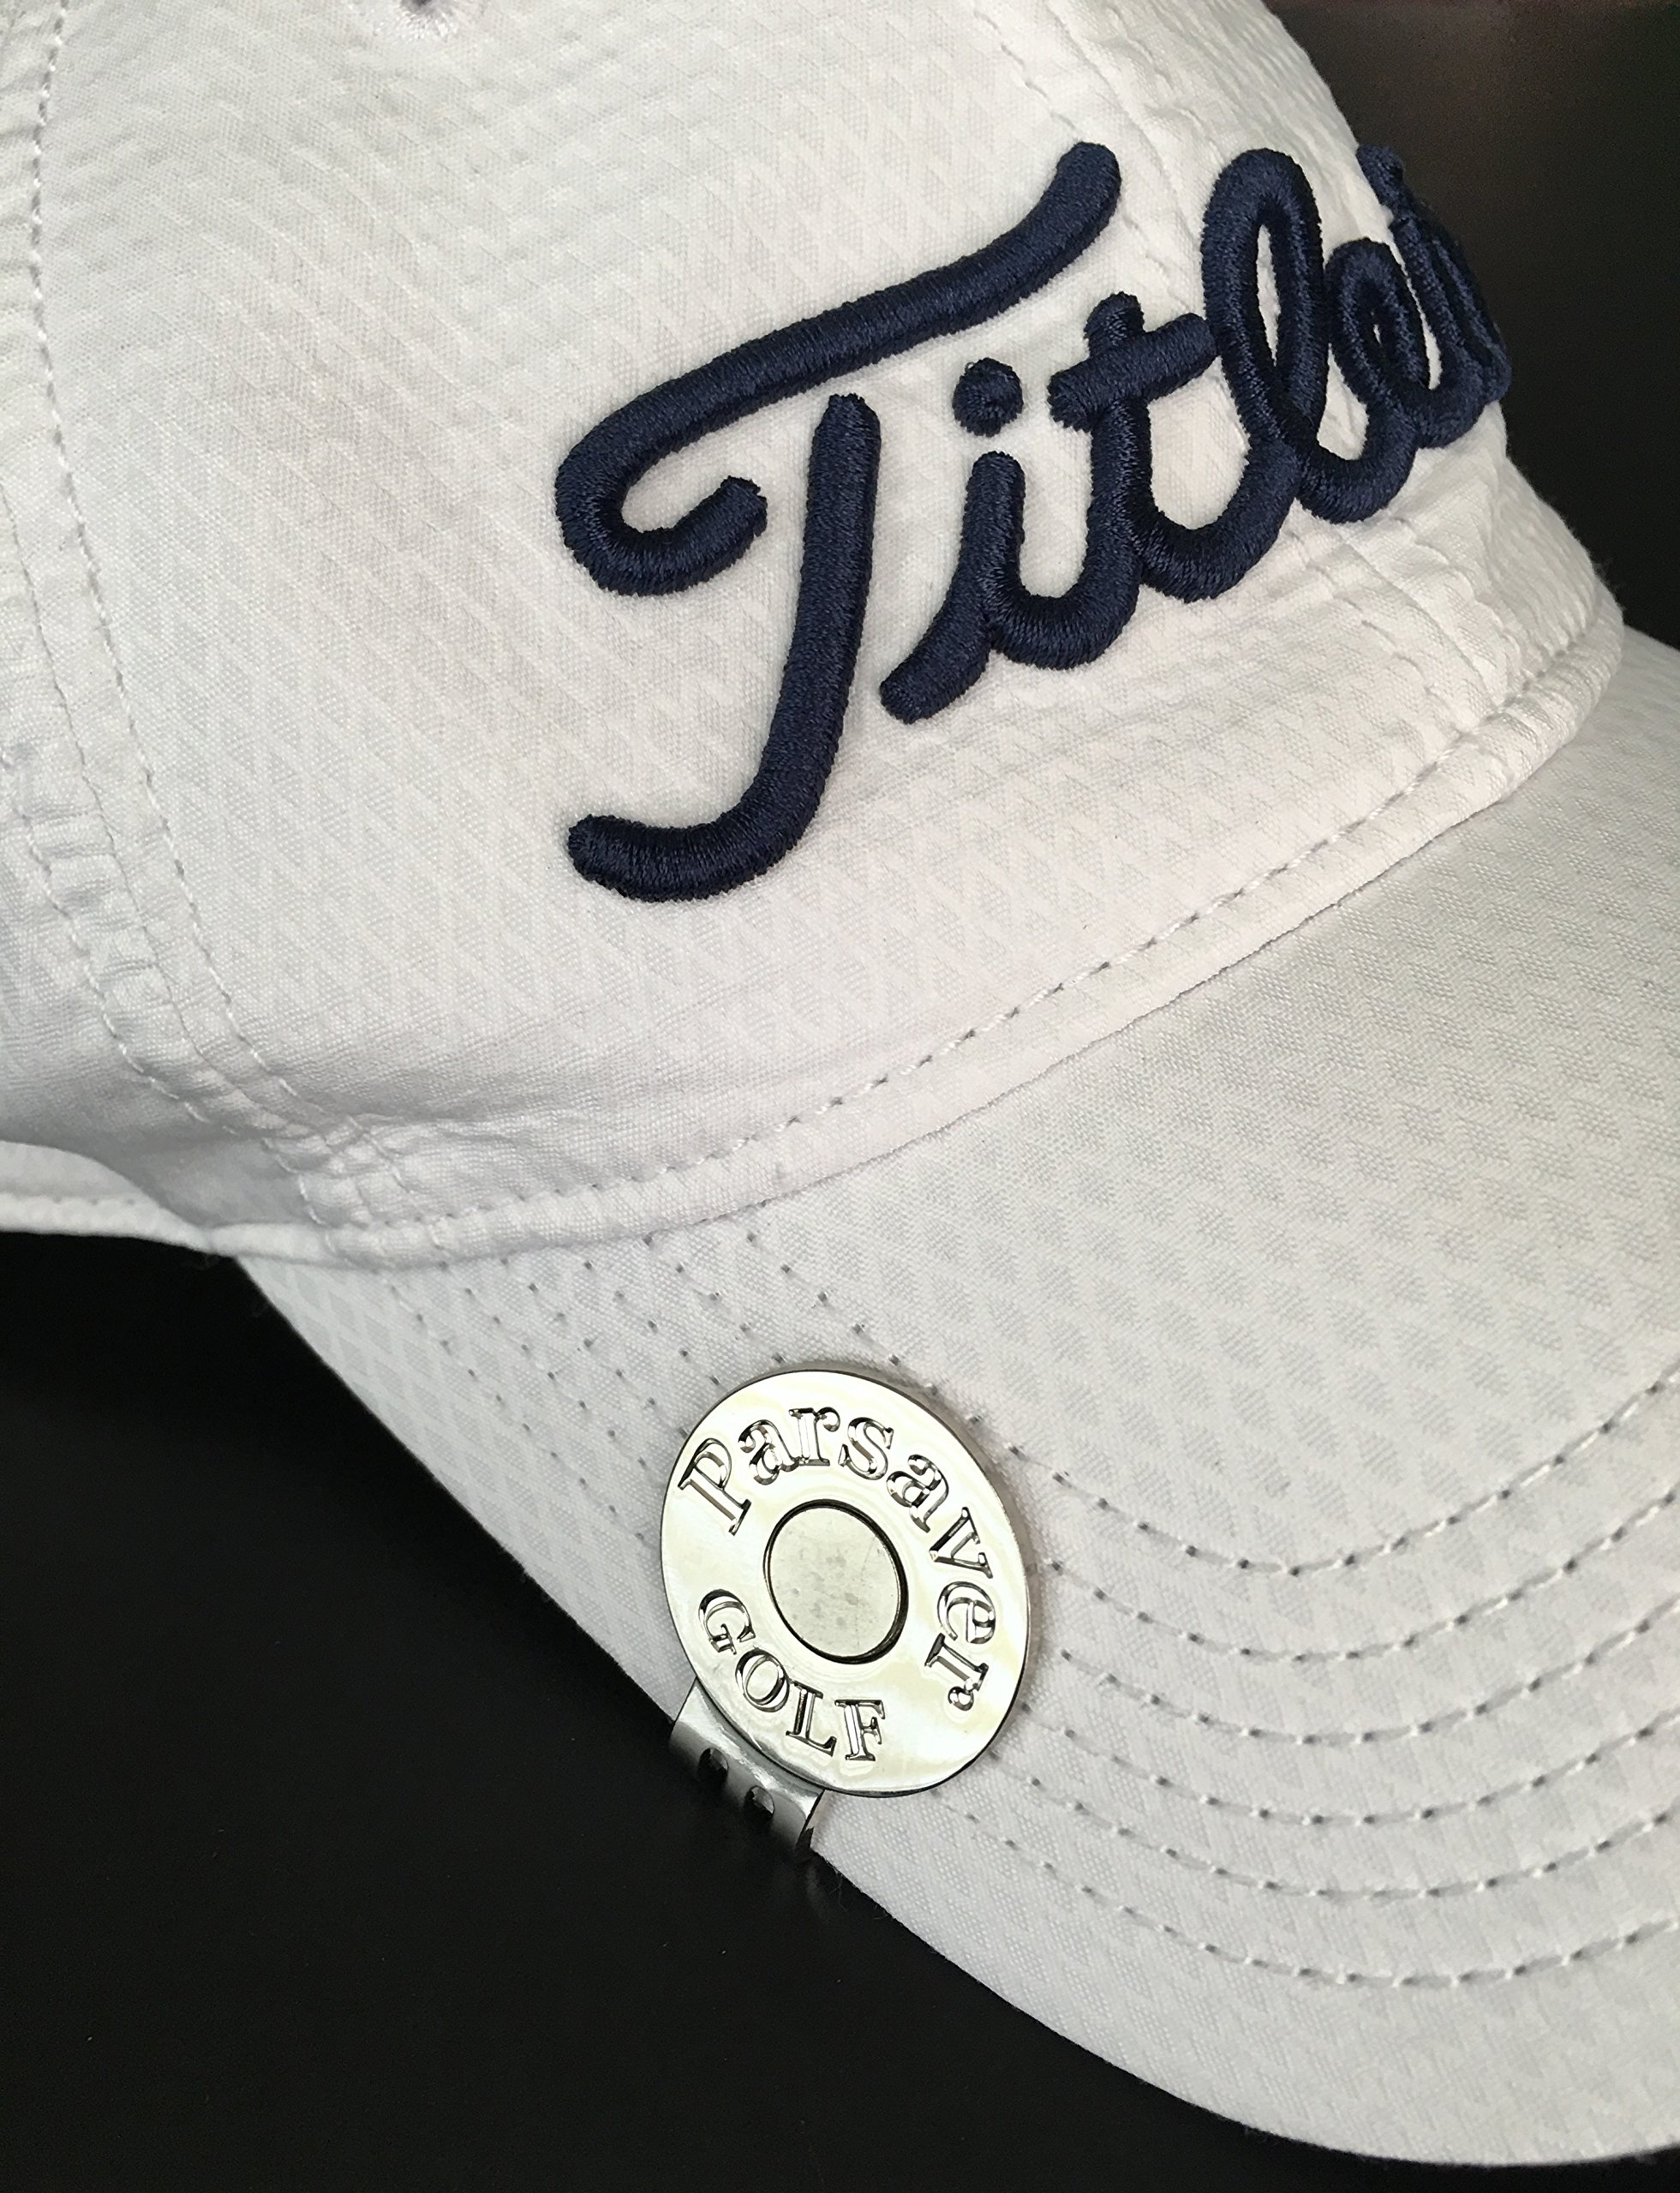 Parsaver Swarovski Crystal Golf Ball Markers - with Hat Belt Clip - Air Force Ball Marker - A Great Golf Gift idea for Men Women - Golf Course Accessories